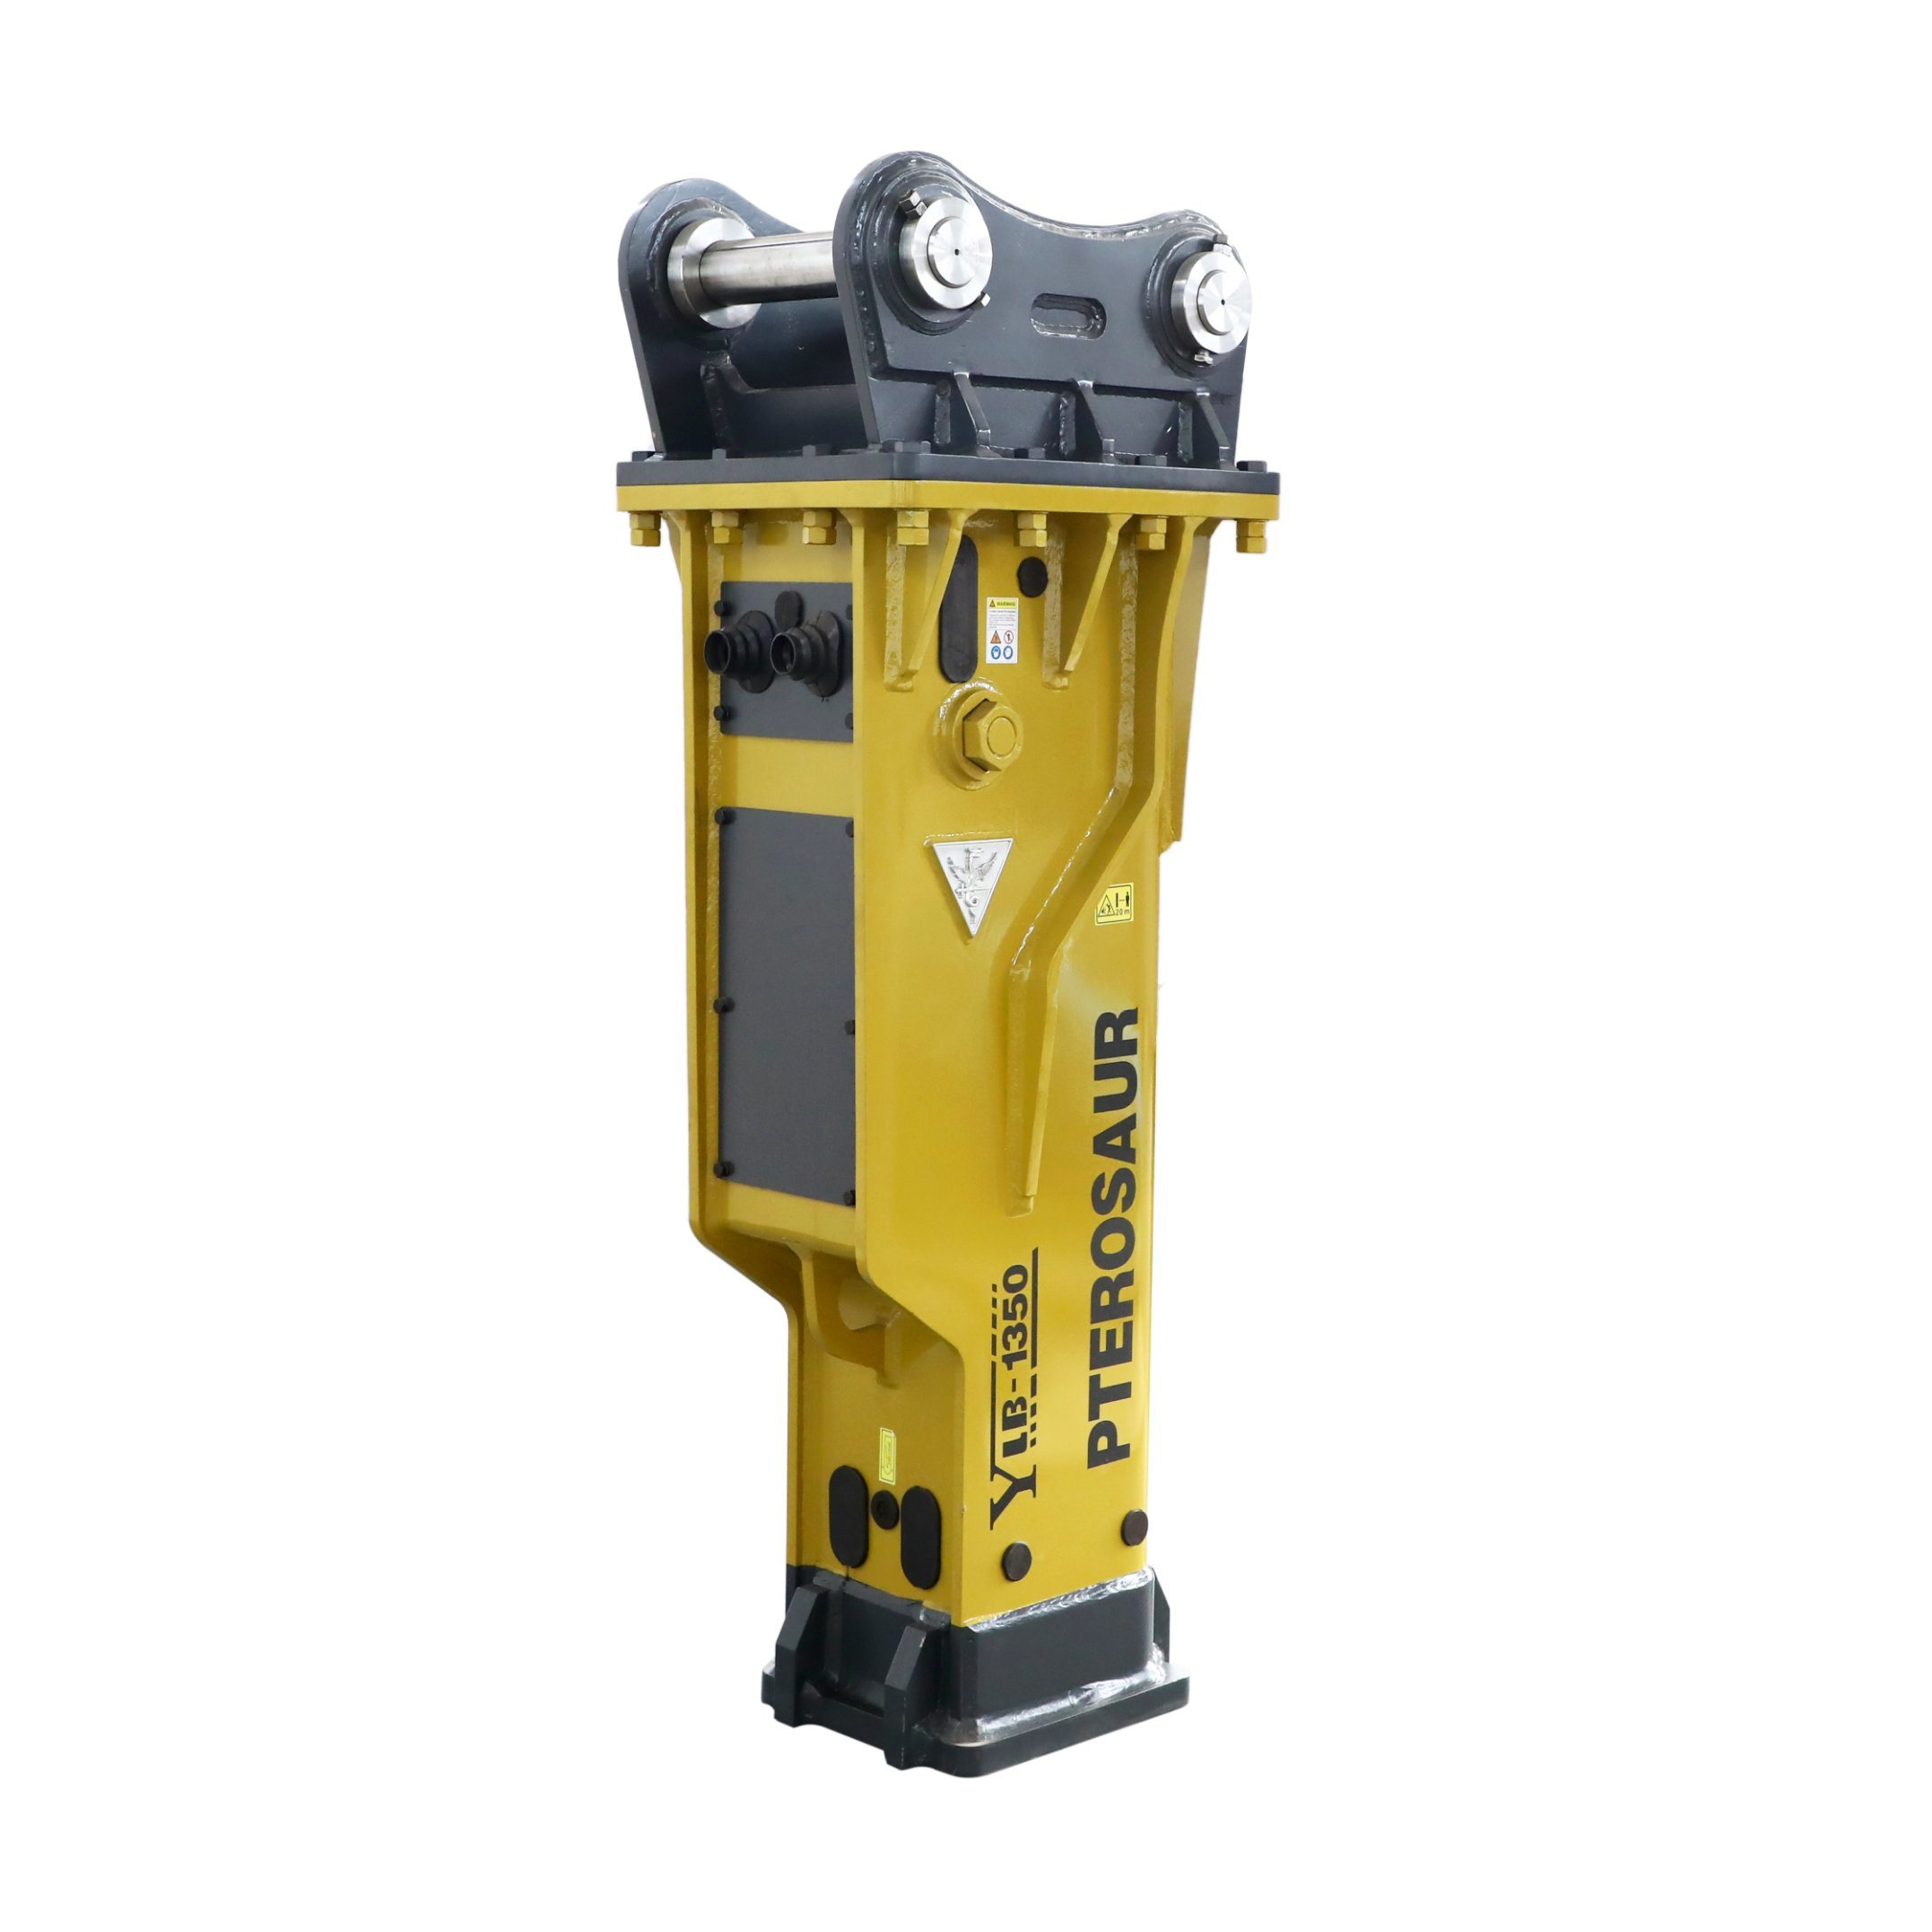 FURUKAWA HB20G hydraulic hammer for 18-21ton carrier